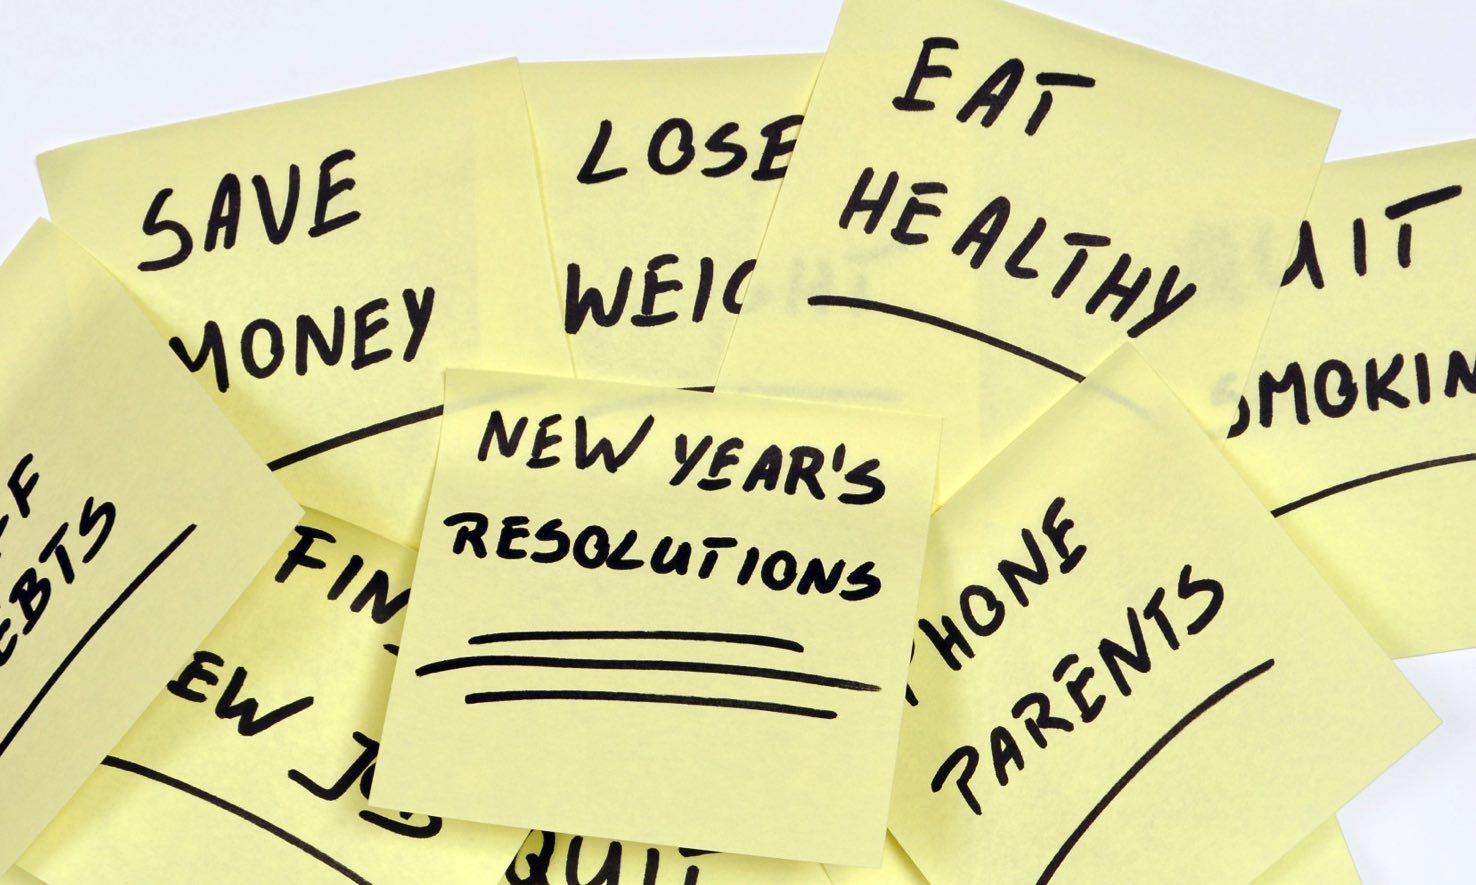 Only 8% of New Year's Resolutions are kept after 12 months